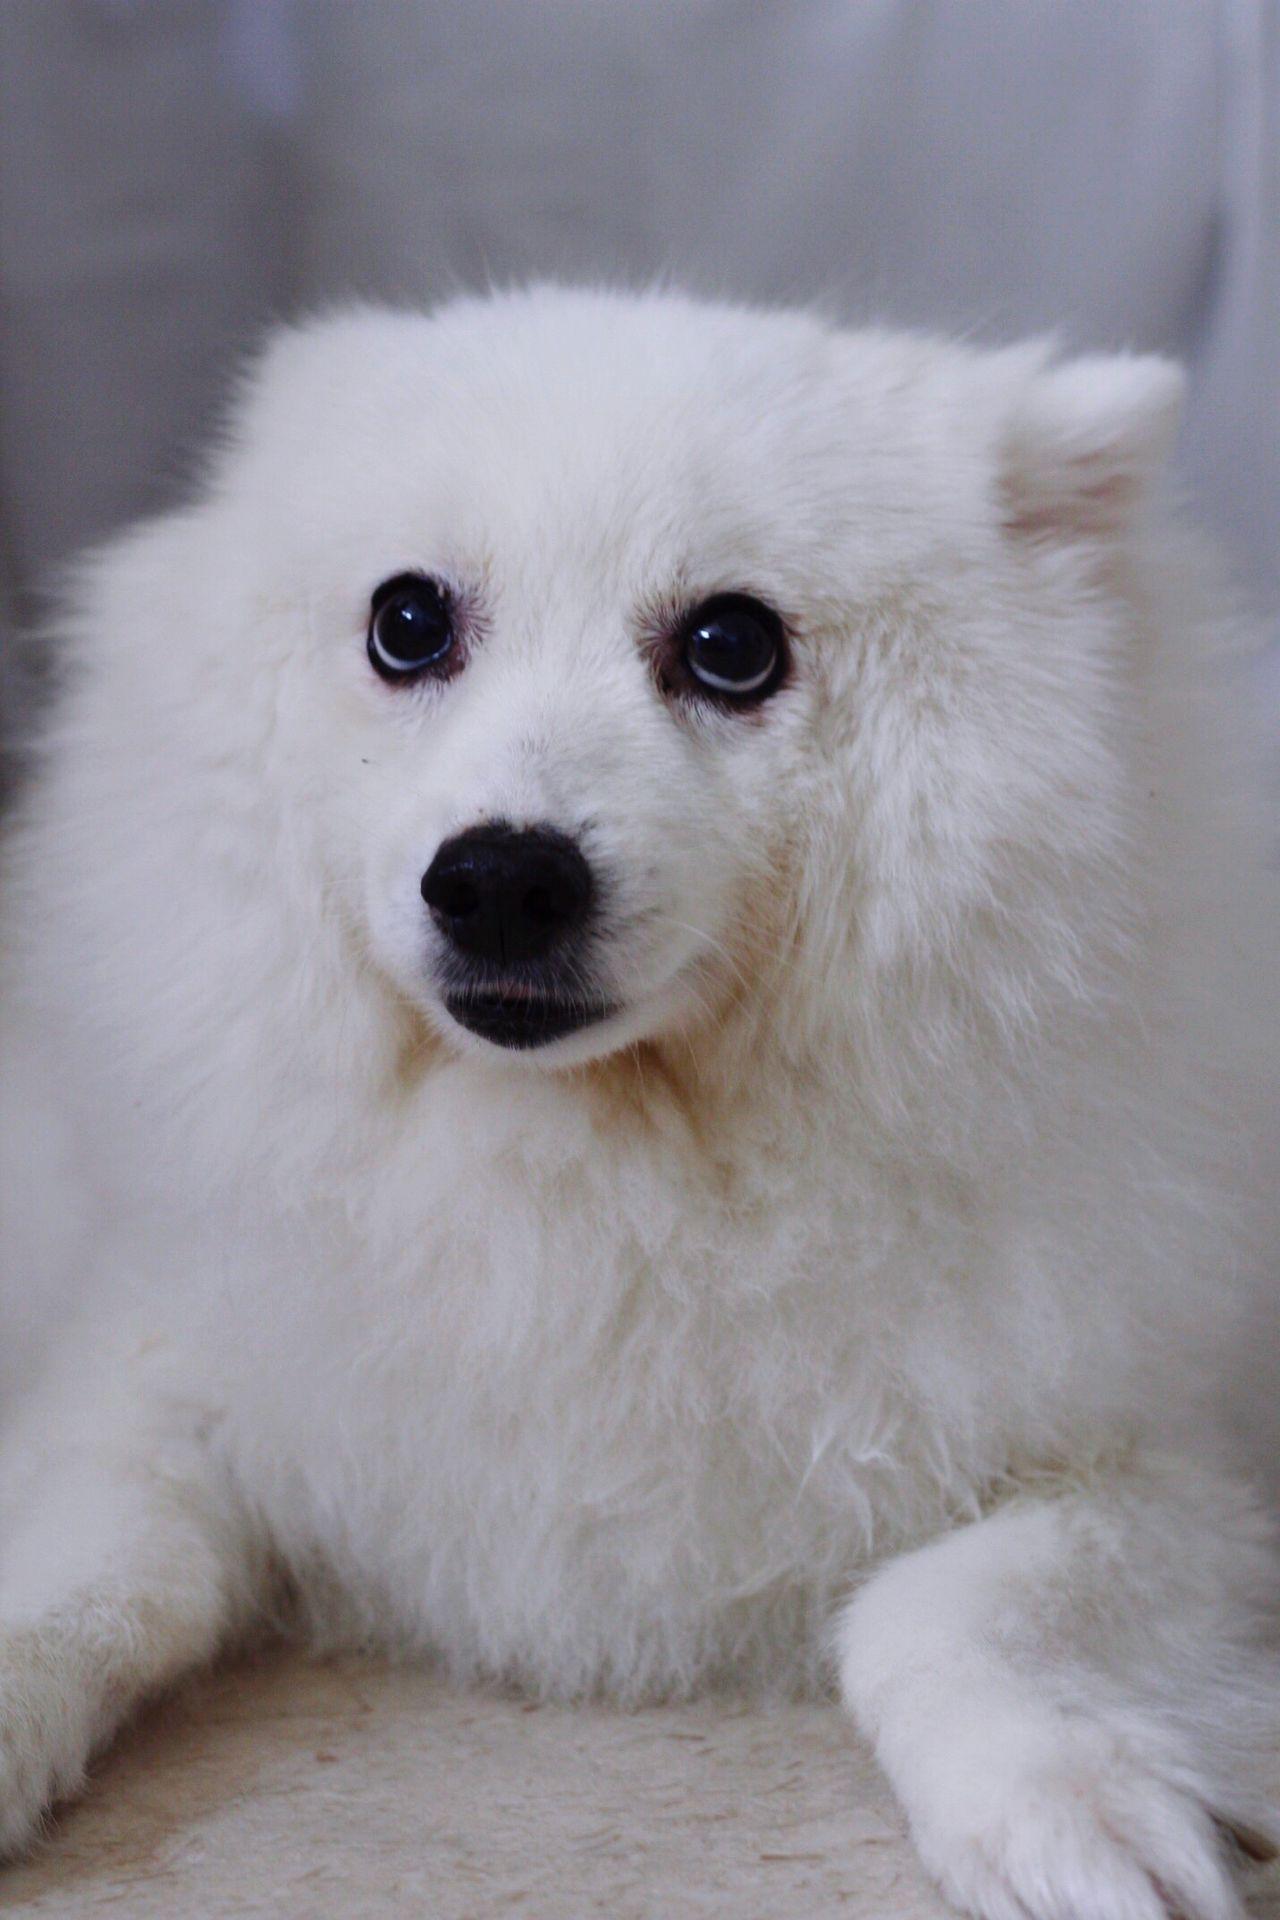 My darling Trixie sweet and mellow, making my heart sing Japanese Spitz Spitz Animal Themes One Animal Pets Portrait Domestic Animals Close-up Indoors  White Fluffy Relaxed Fur Innocent Sweet Dogs Sitting Face Lookingup Mammal No People Day Focus On Foreground Listening